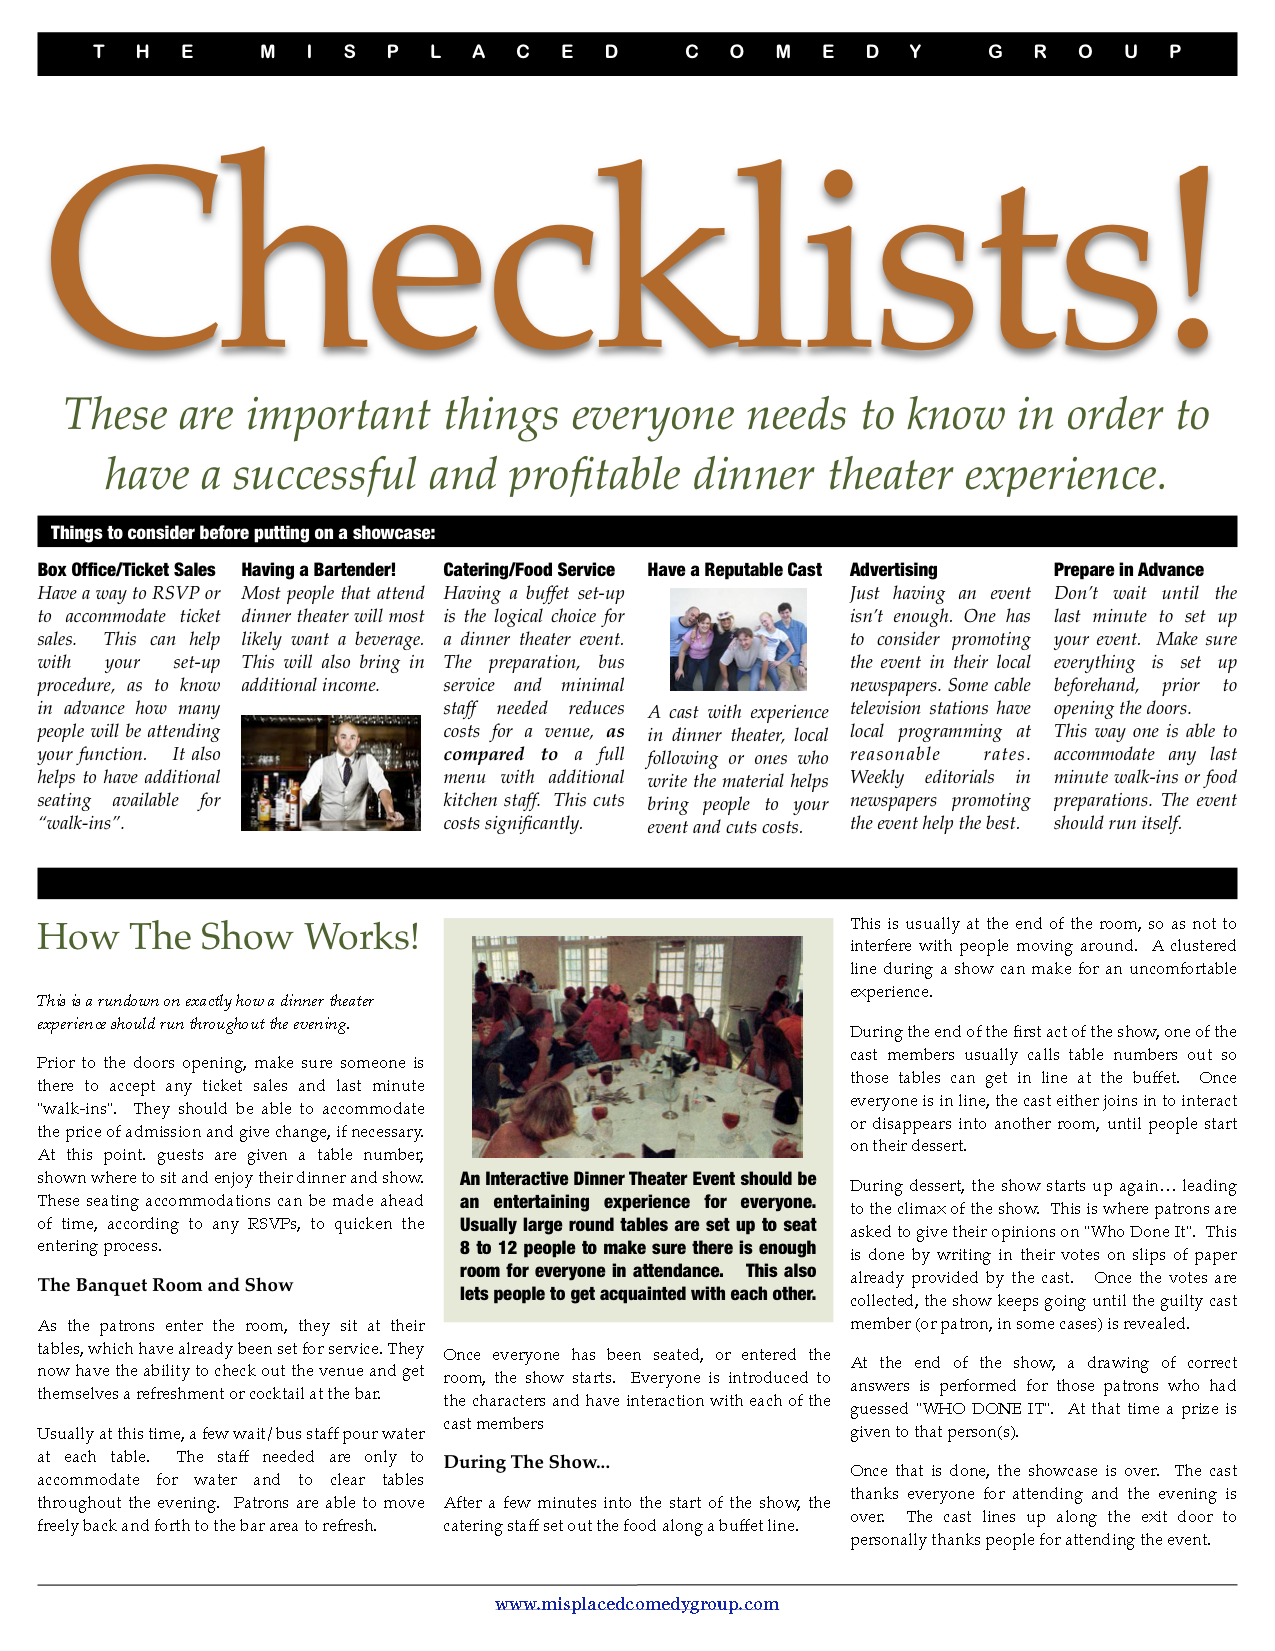 DinnerTheater Checklists